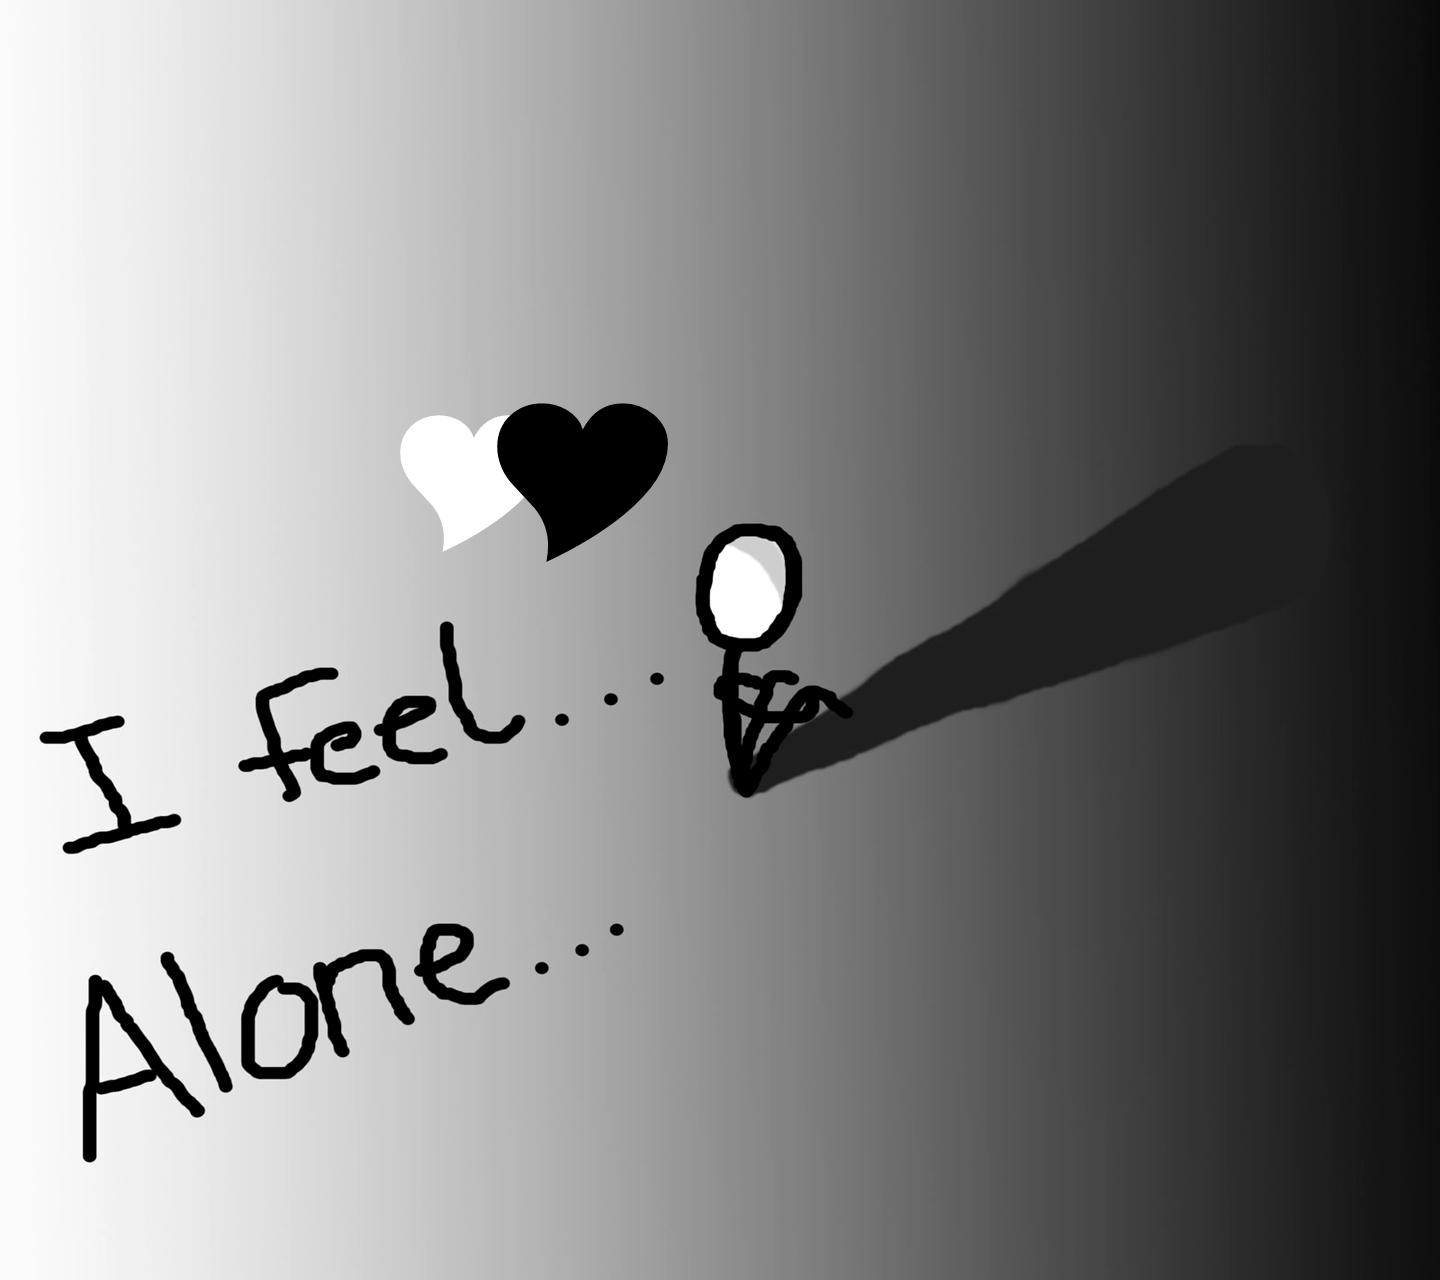 I Feel Alone Quotes Lonely Pictures Images Graphics For Facebook Whatsapp  Page 2